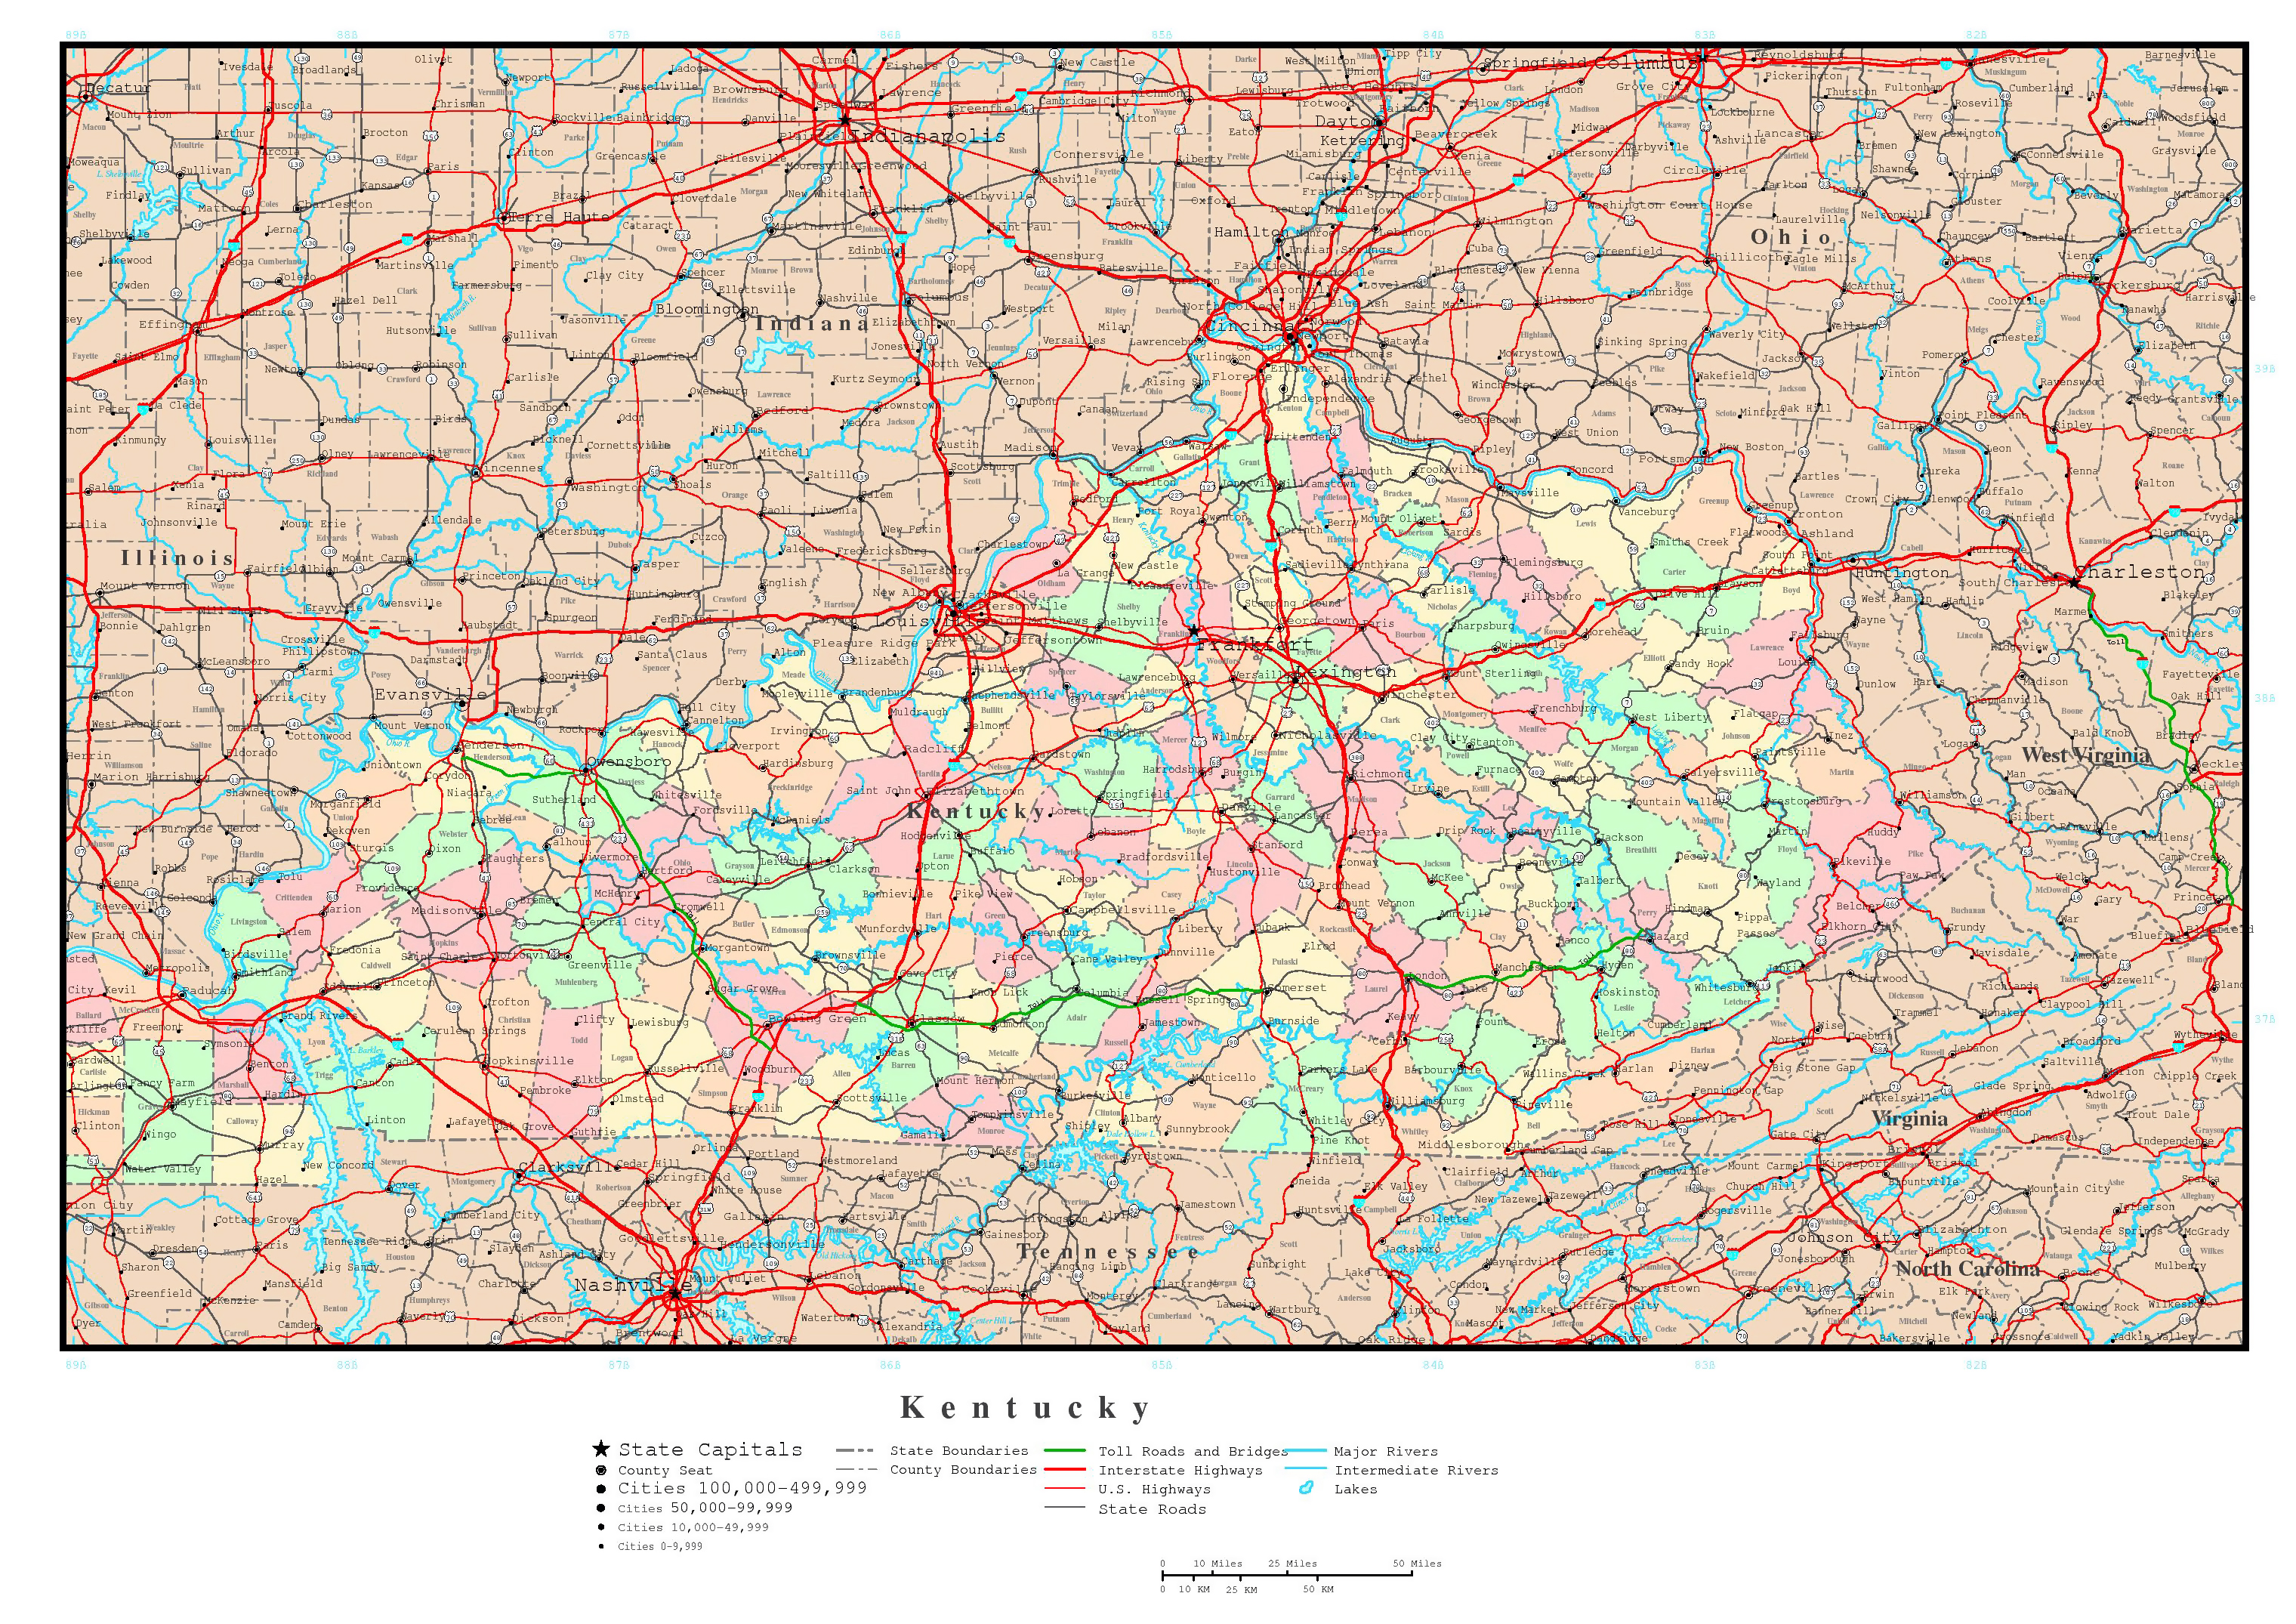 Kentucky State Map With Cities And Counties.Kentucky State Map Cities Large